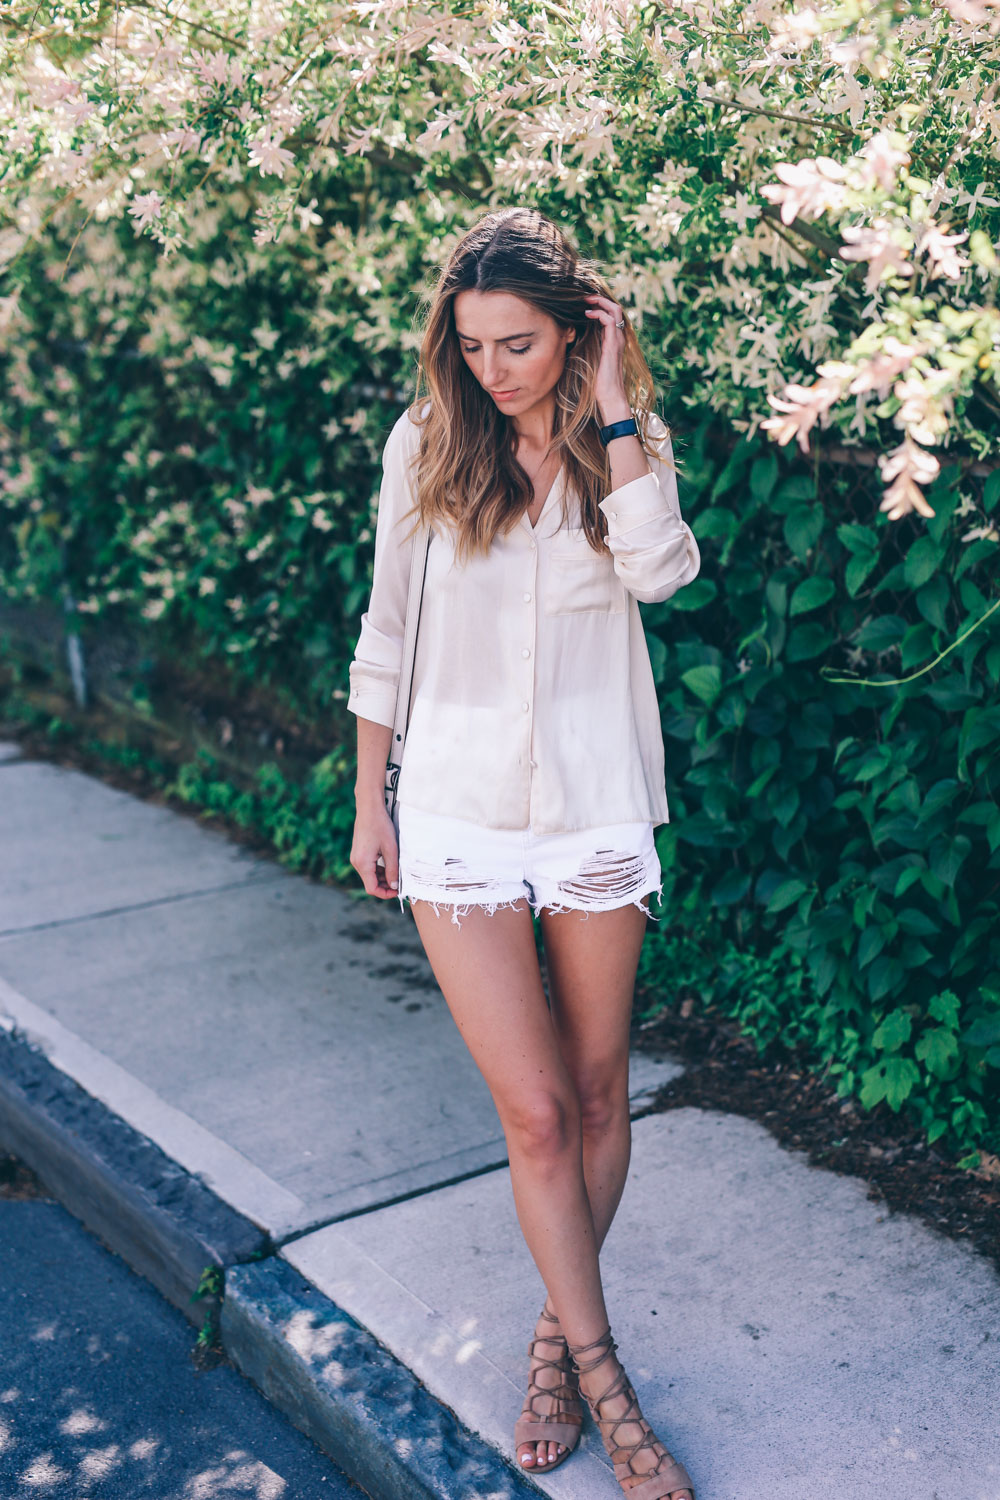 Jess Ann Kirby wears her blush nude pyjama shirt with distressed shorts, finishing off the perfect feminine summer look with beachy waves and gladiator sandals. Shirt: Topshop, Short: Topshop, Shoes: Steve Madden, Watch: Larsson & Jennings, Bag: Coach (All items from Nordstrom)